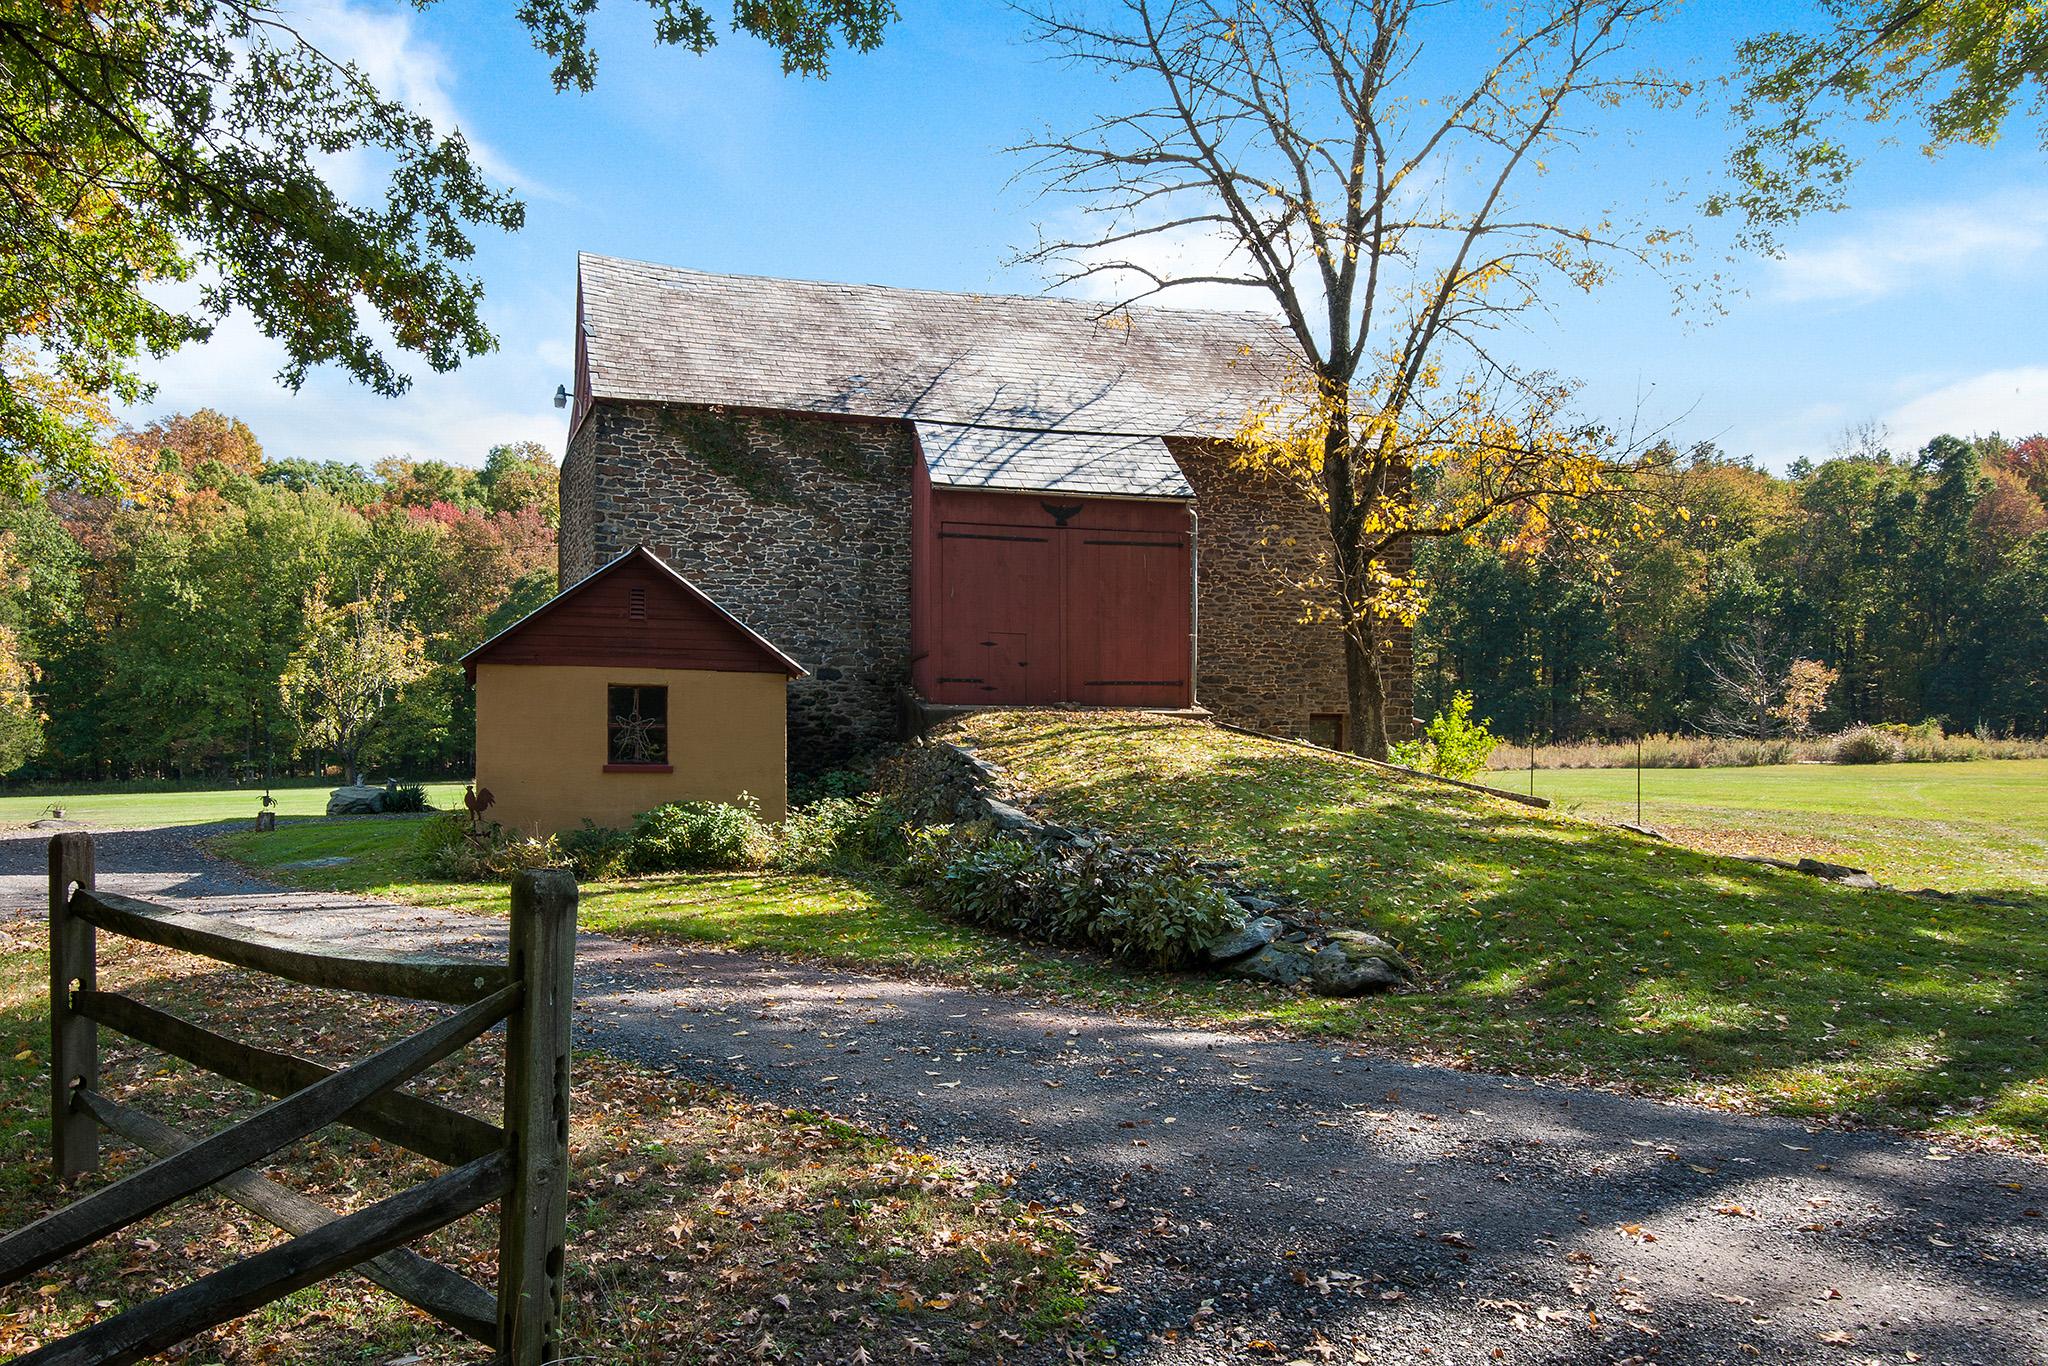 Stone Bank Barn Bucks County | #StoneBankBarn | Bucks County Barns | #BucksCountyBarns